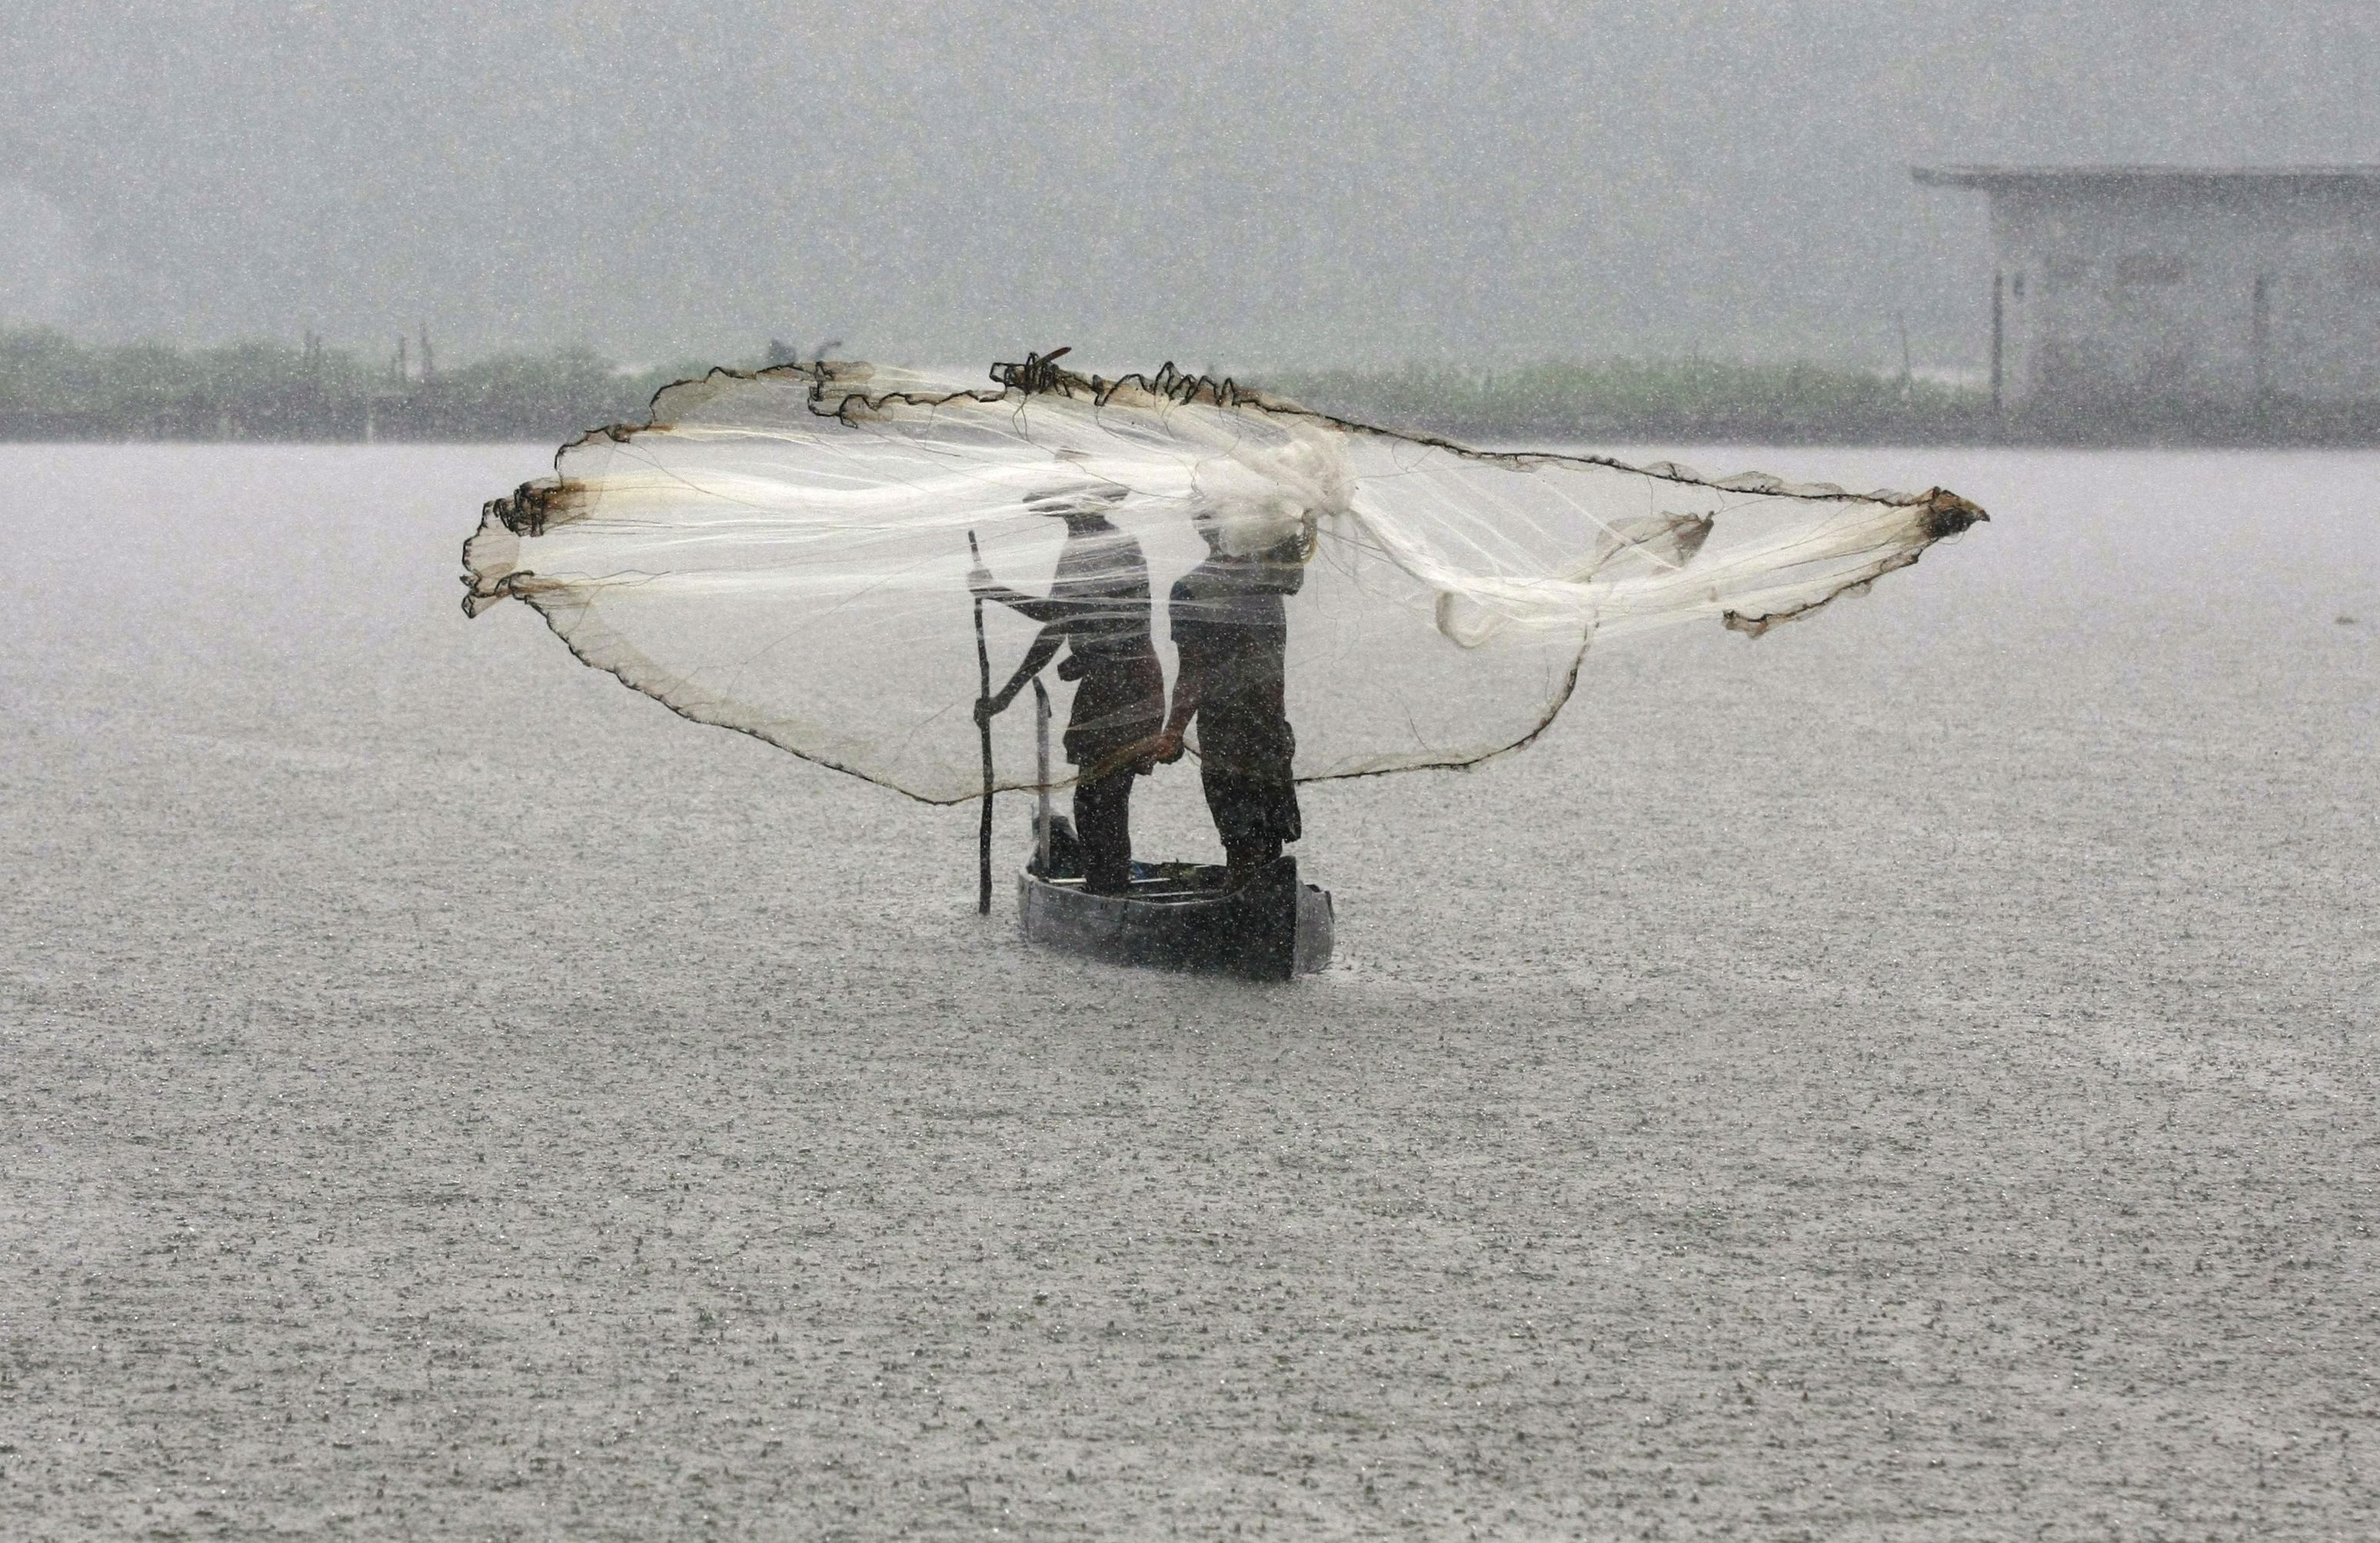 India's deploying space tech to protect fishermen during cyclones